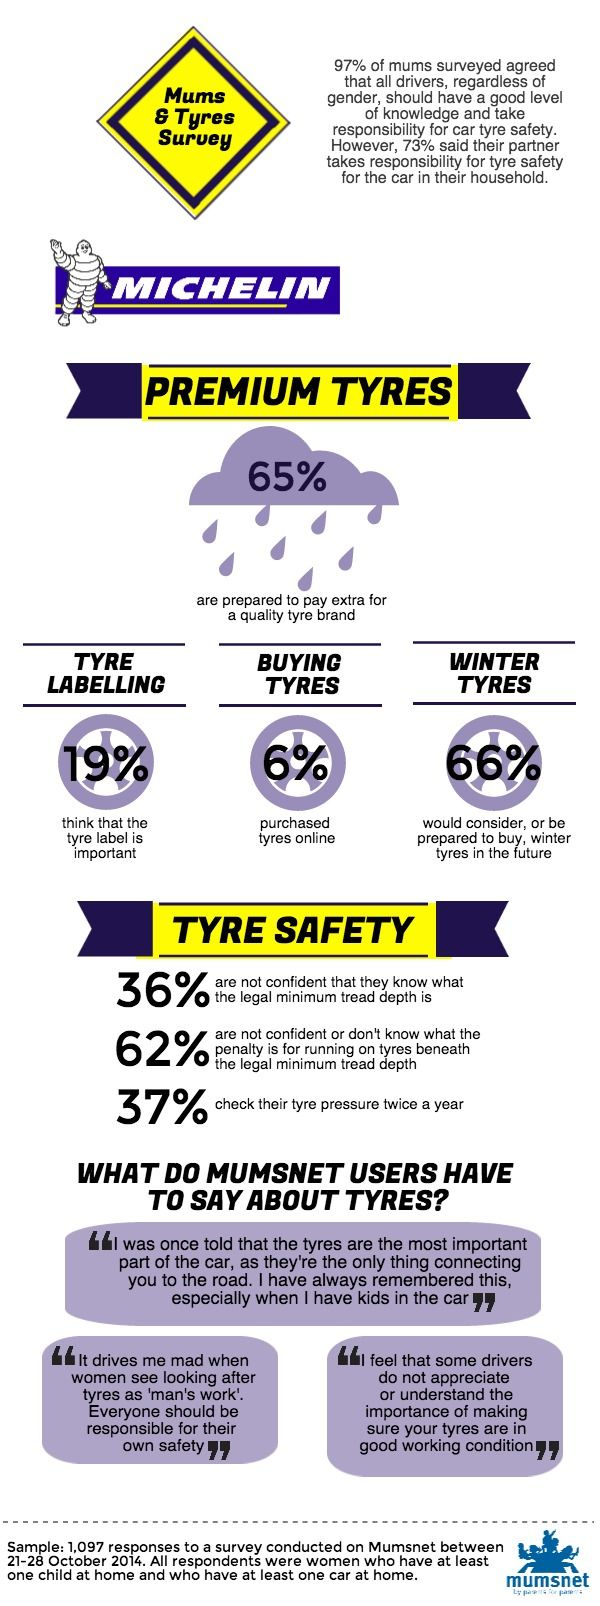 Michelin infographic - Mums and Tyres – Infographic and Myth buster